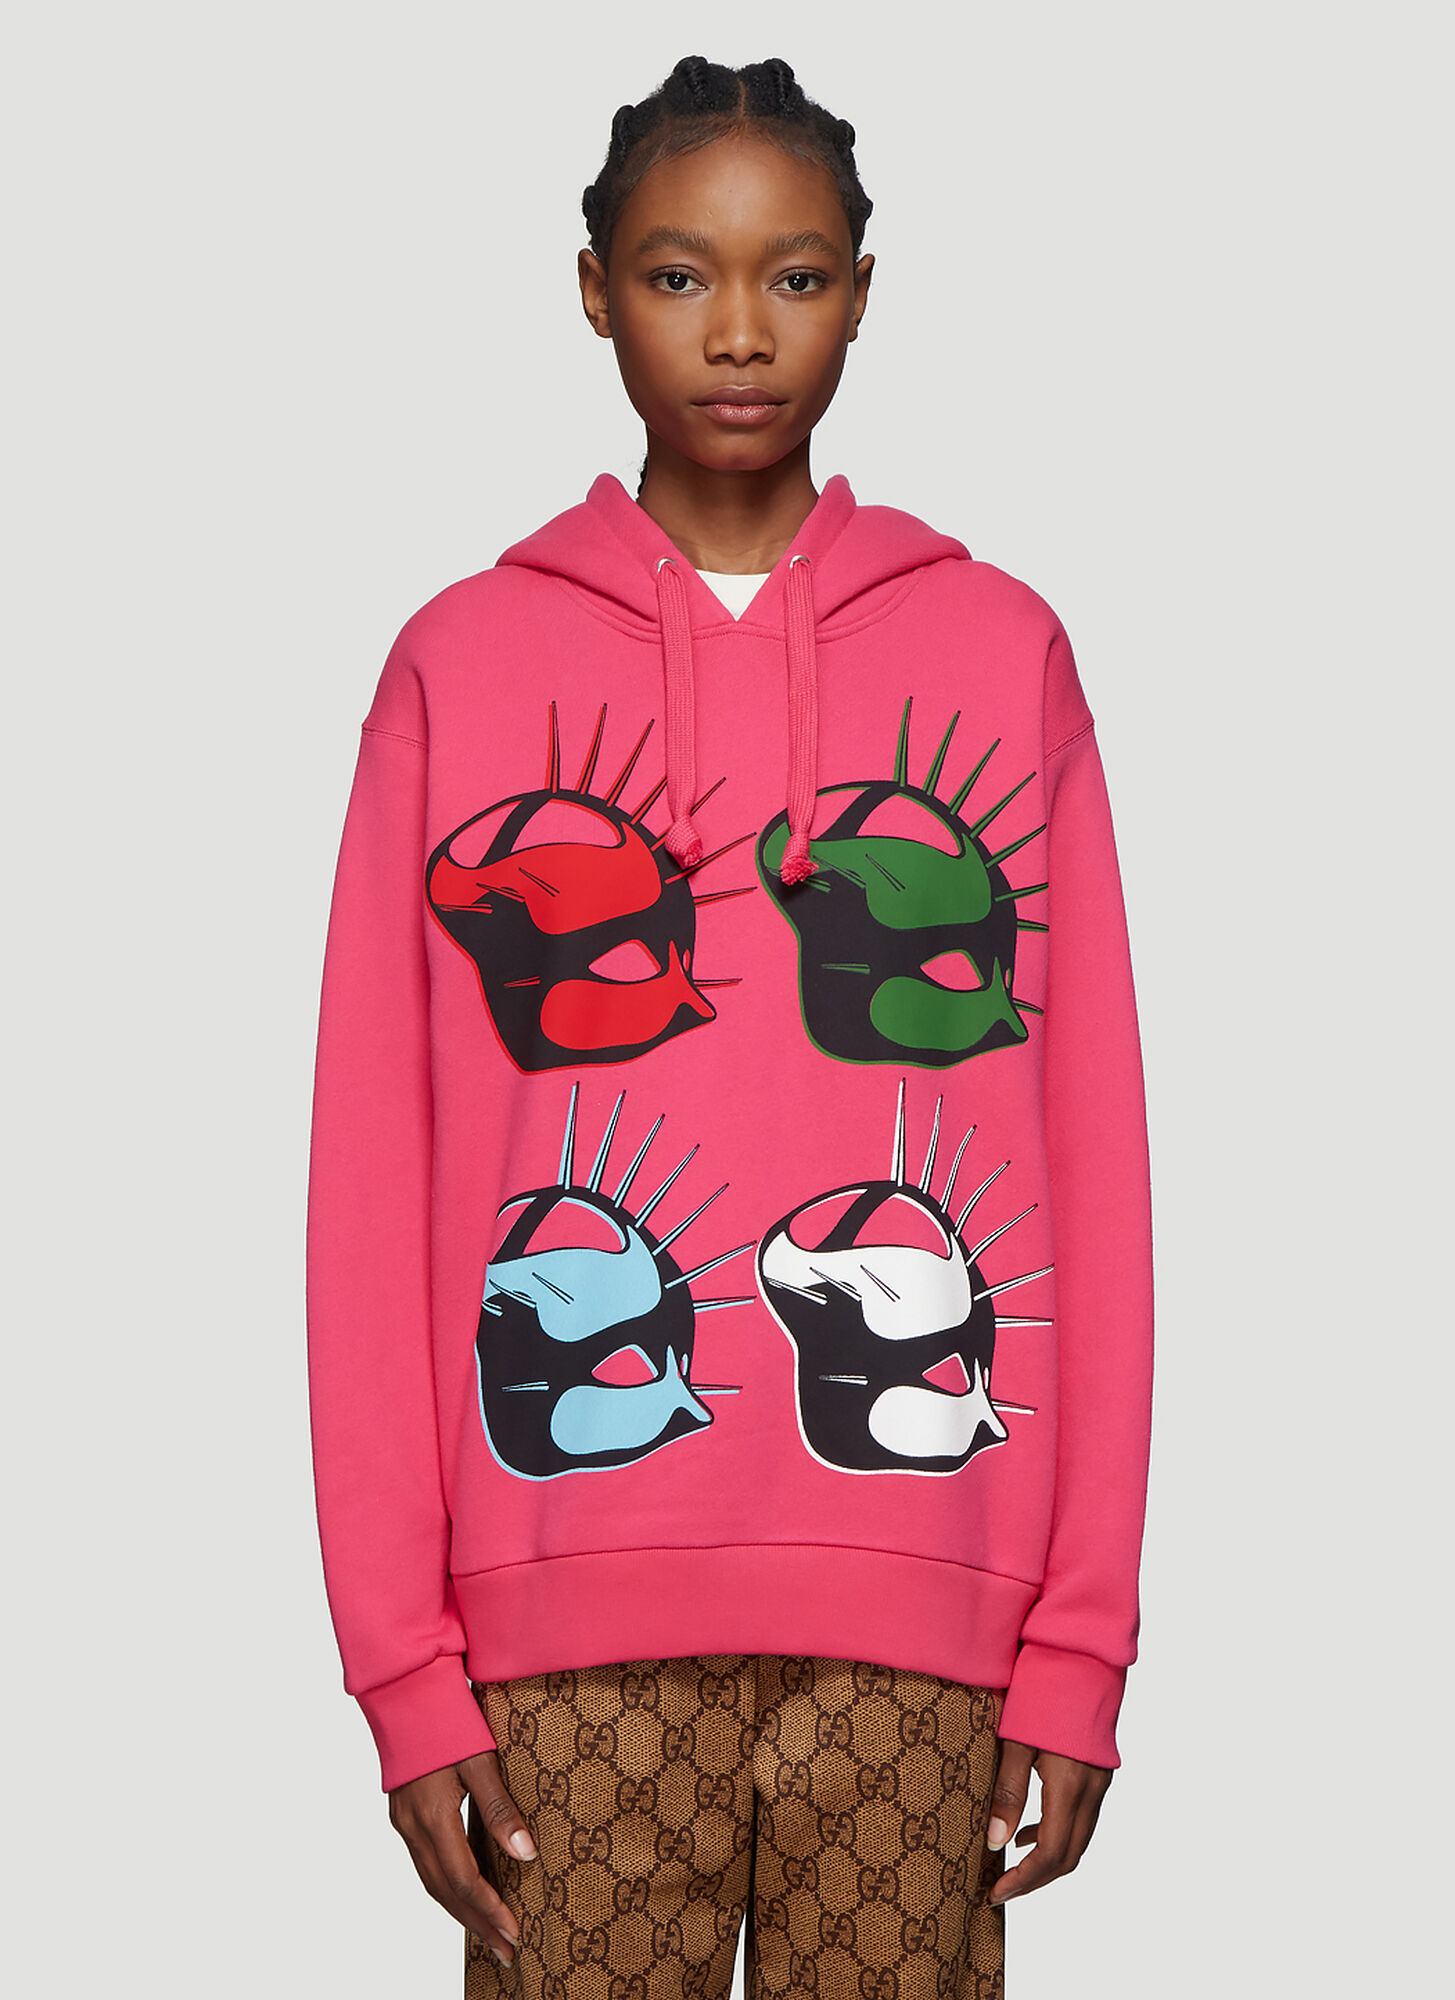 Gucci Mask Hooded Sweatshirt in Pink